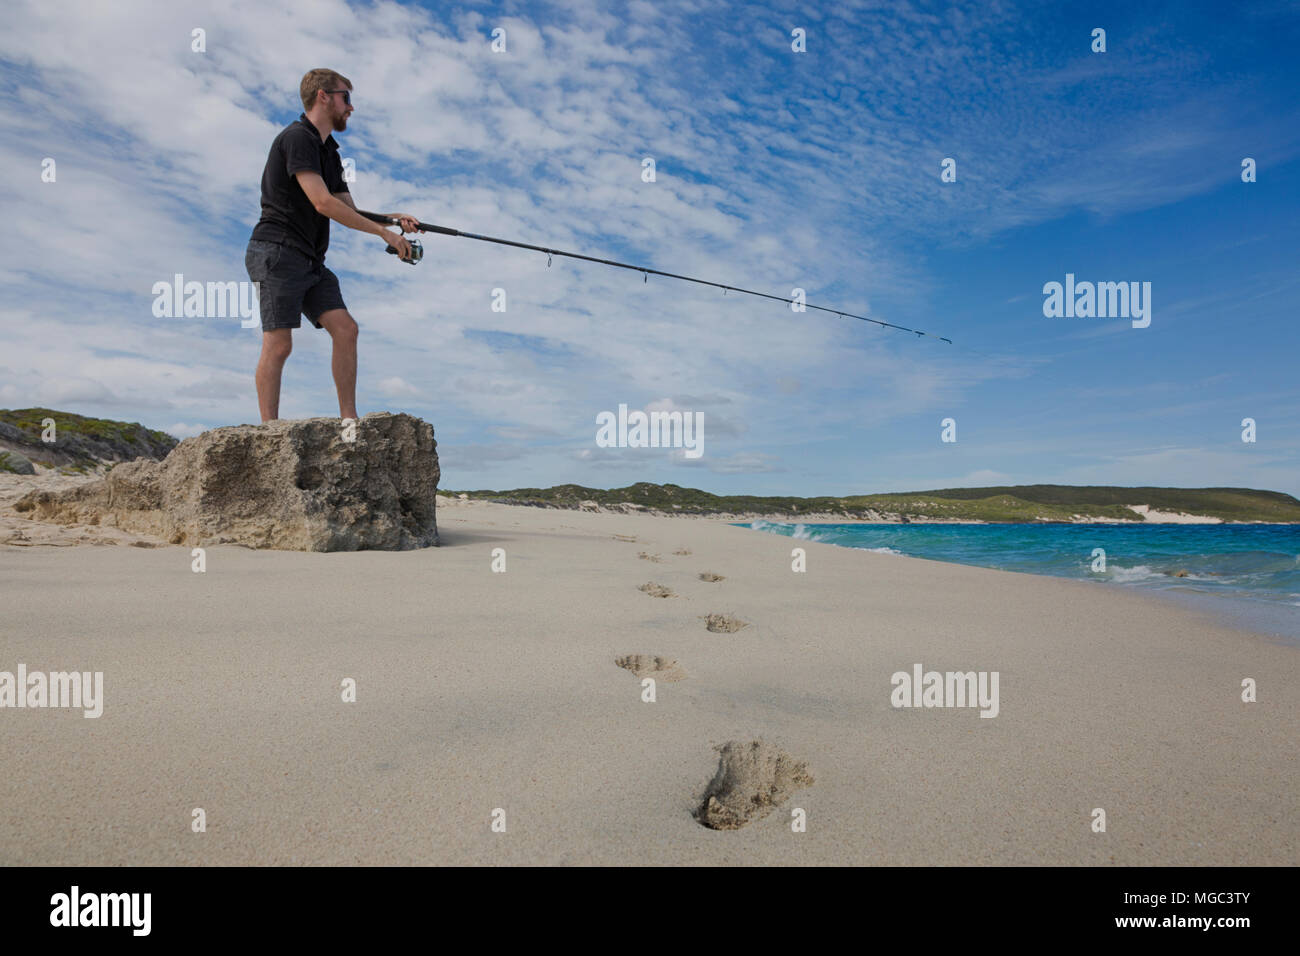 Footprints leading to a man fishing from a rock at Hamelin Bay in Australia. - Stock Image